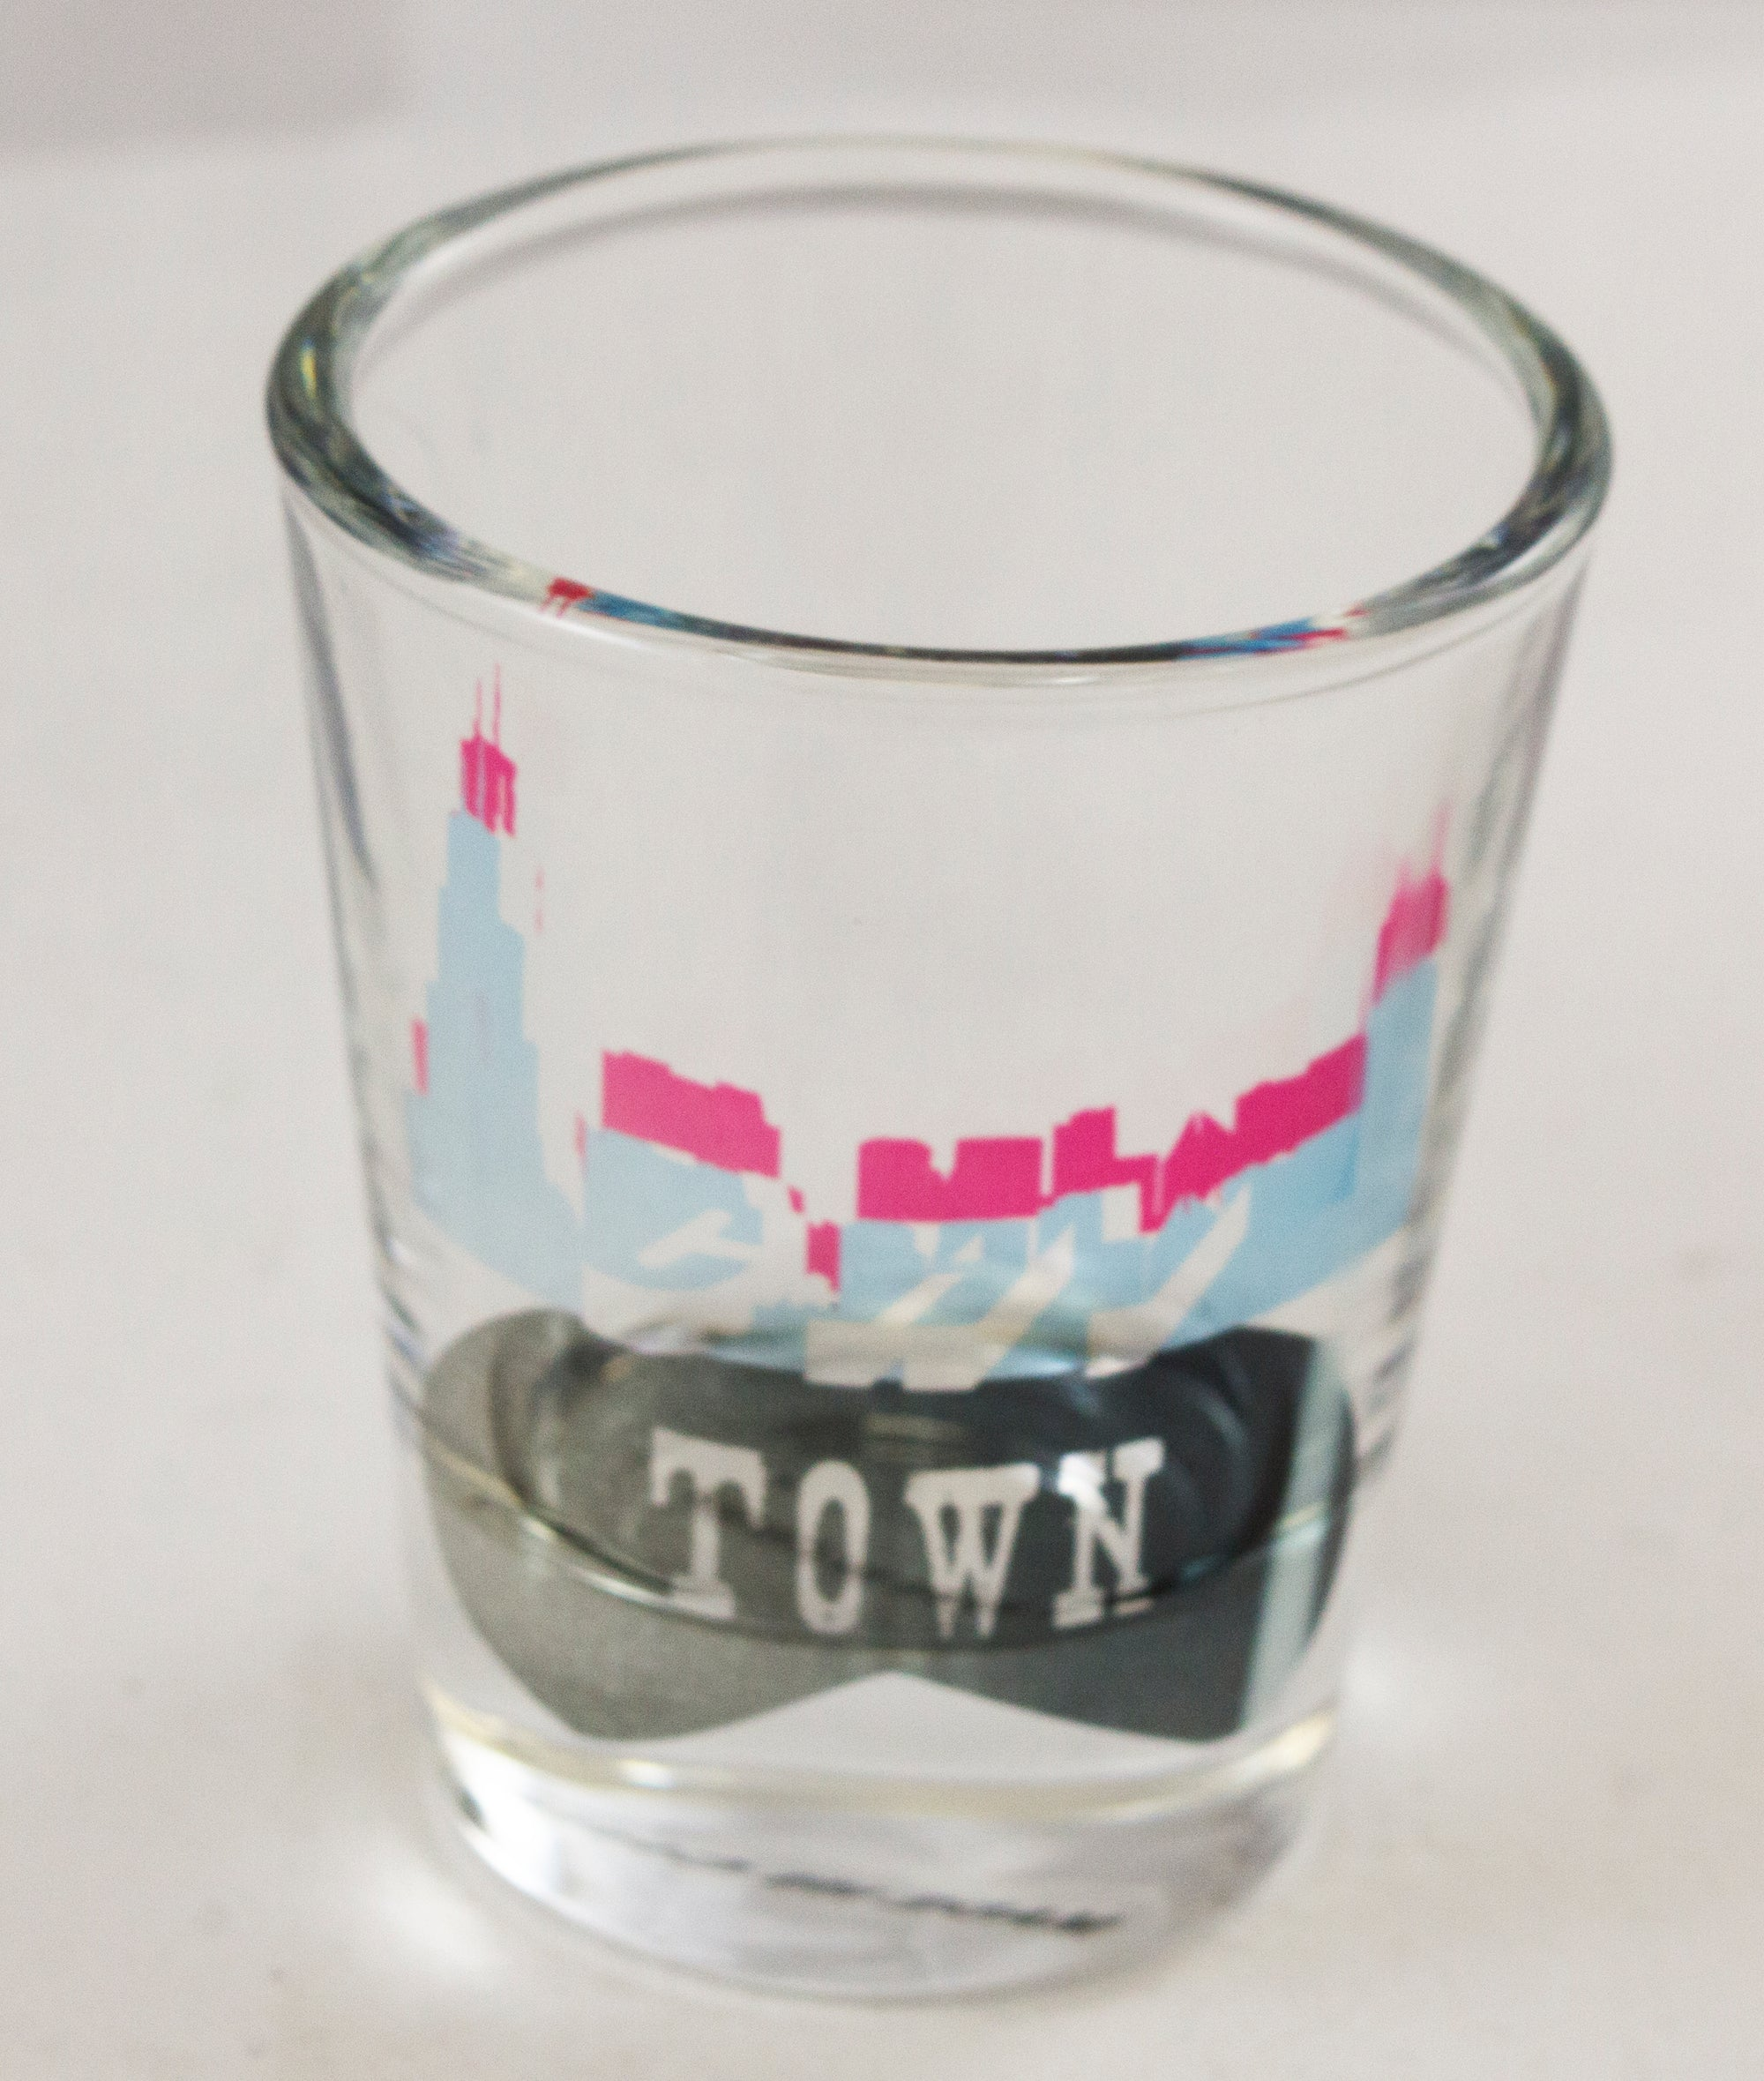 CHI-TOWN BEAN Shotglass - Aspireimaginary